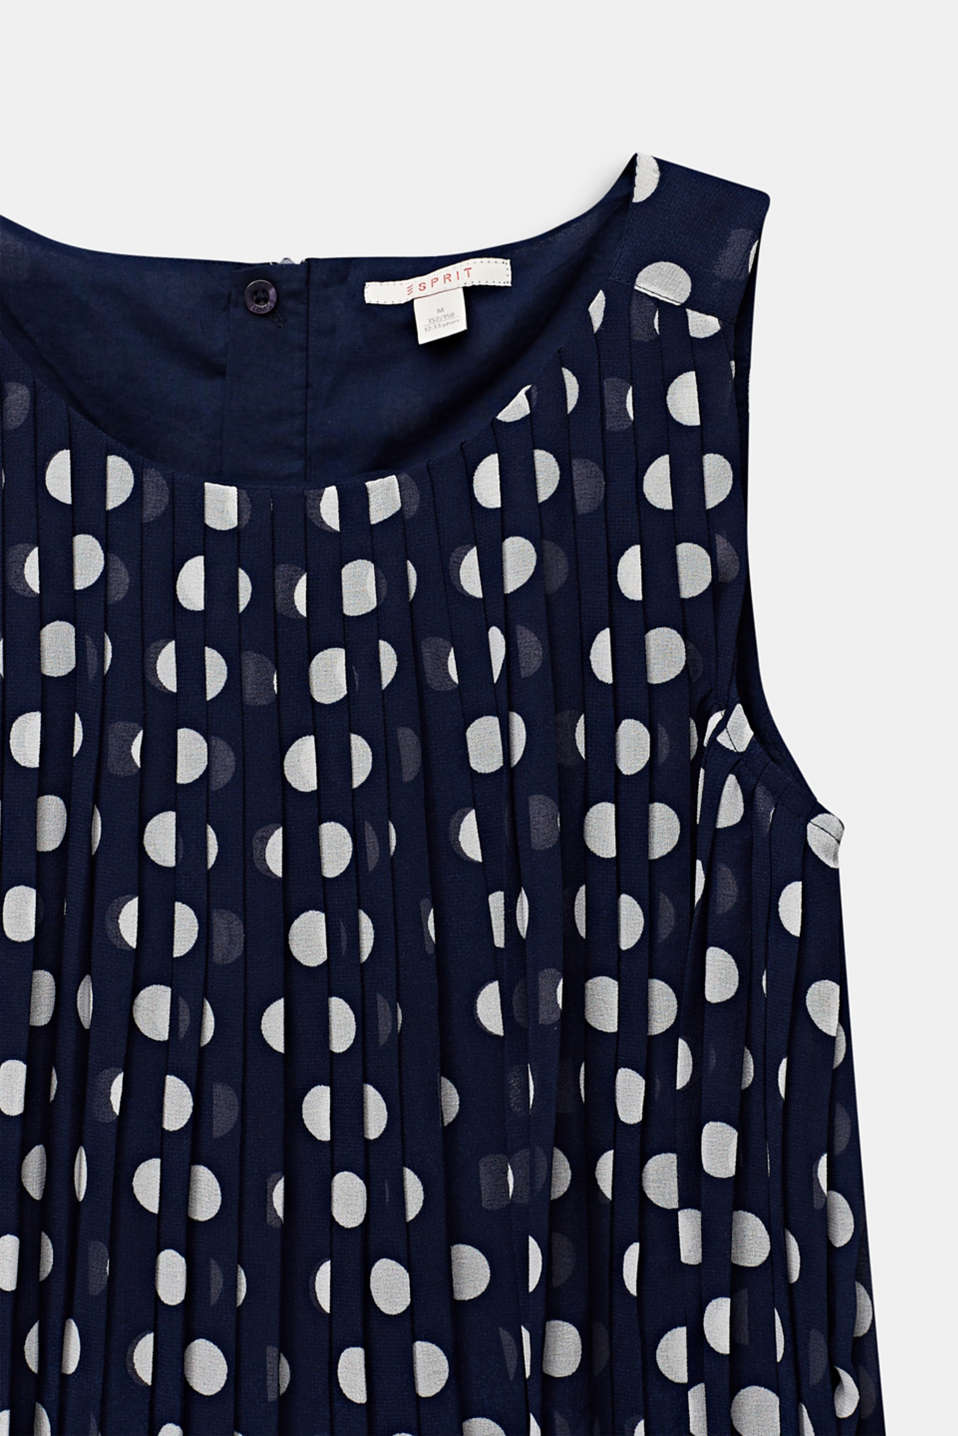 Pleated chiffon dress with polka dots, LCMIDNIGHT BLUE, detail image number 2